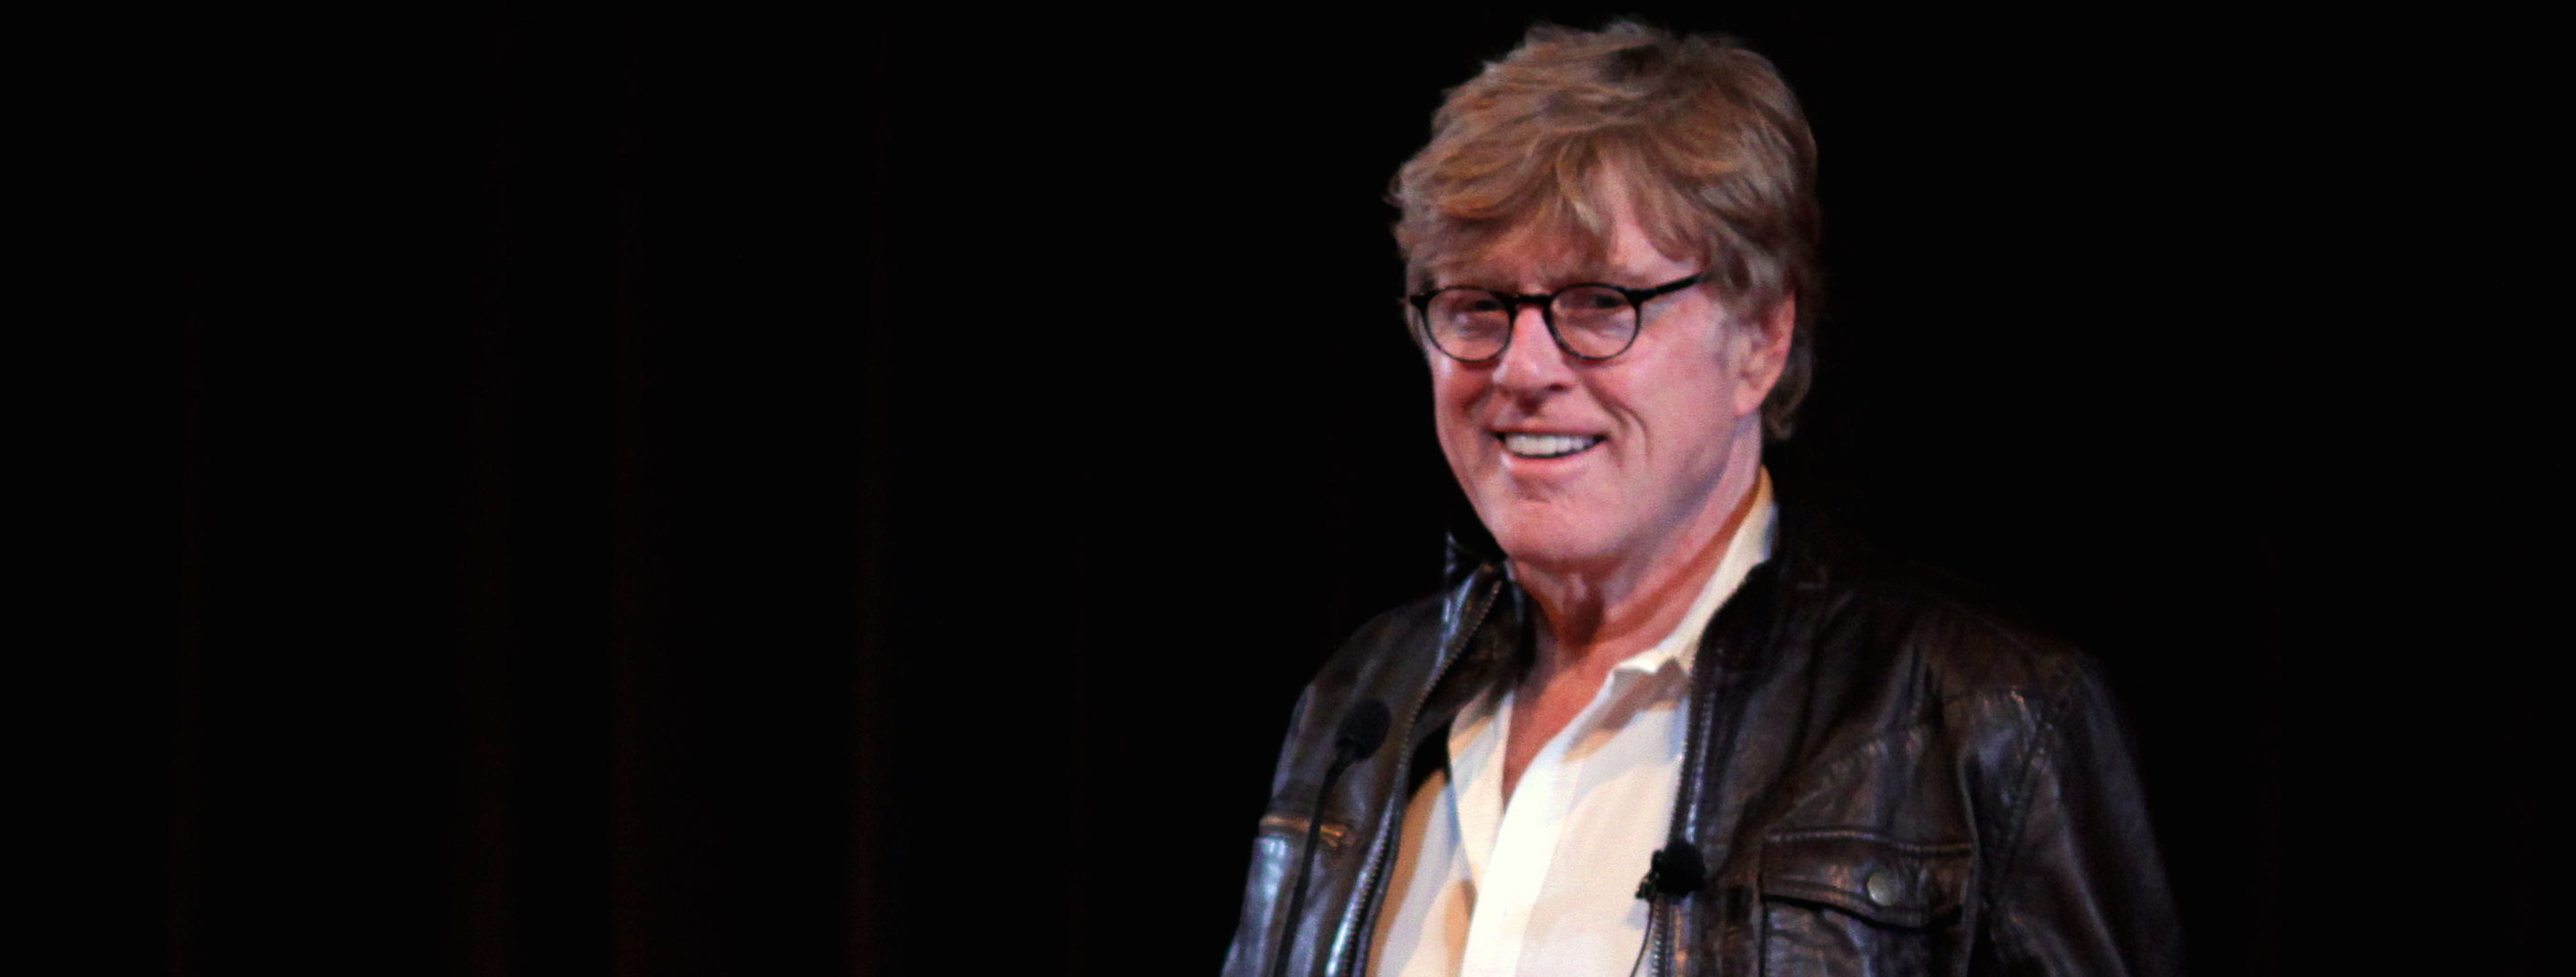 Bob Redford speaks